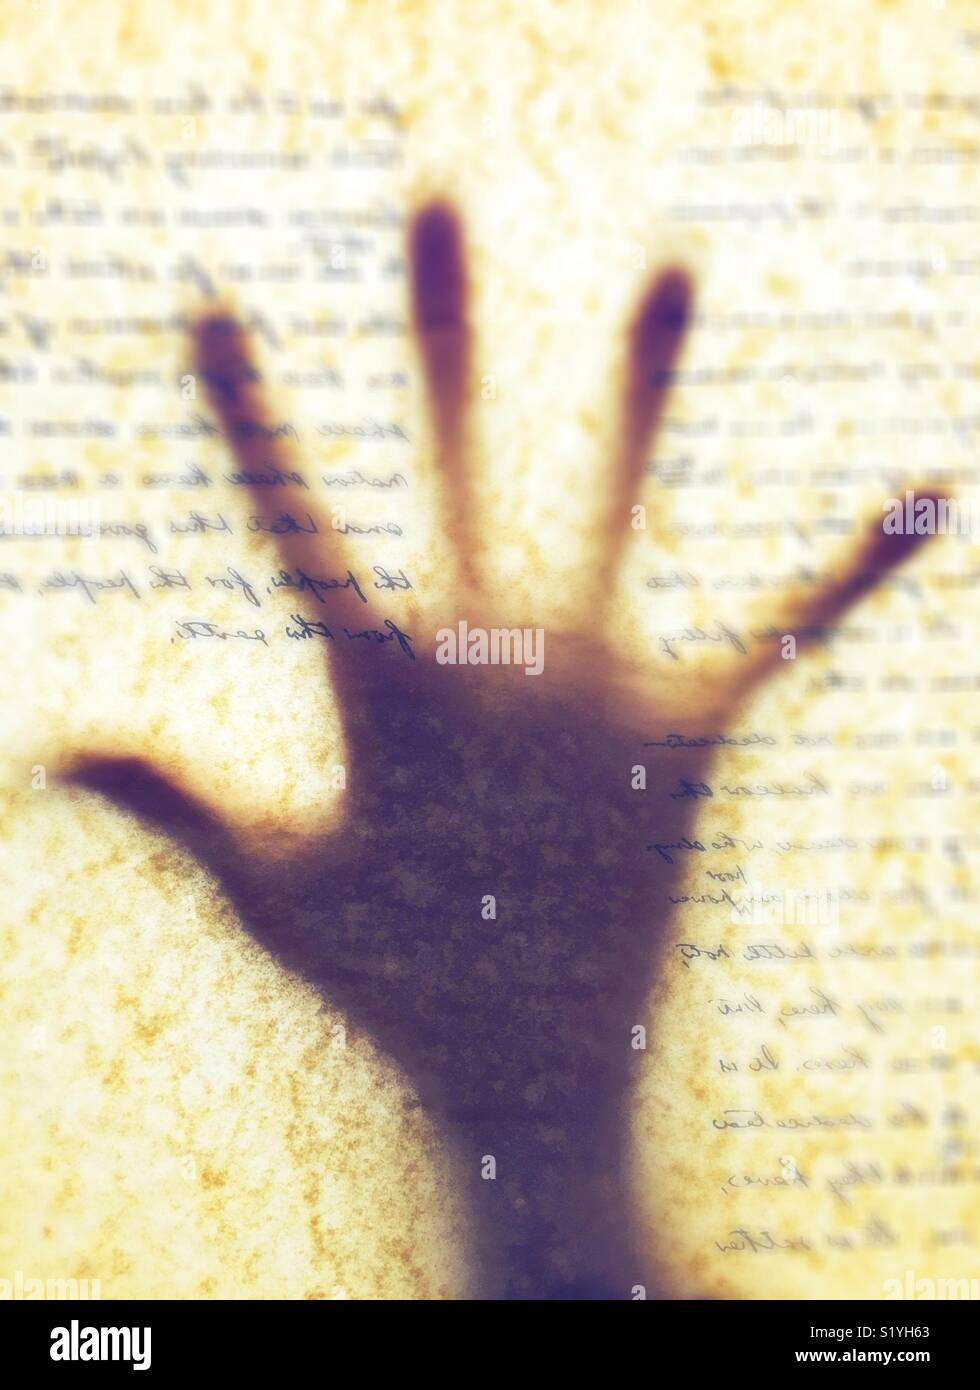 Silhouette of a hand against words on parchment paper. - Stock Image